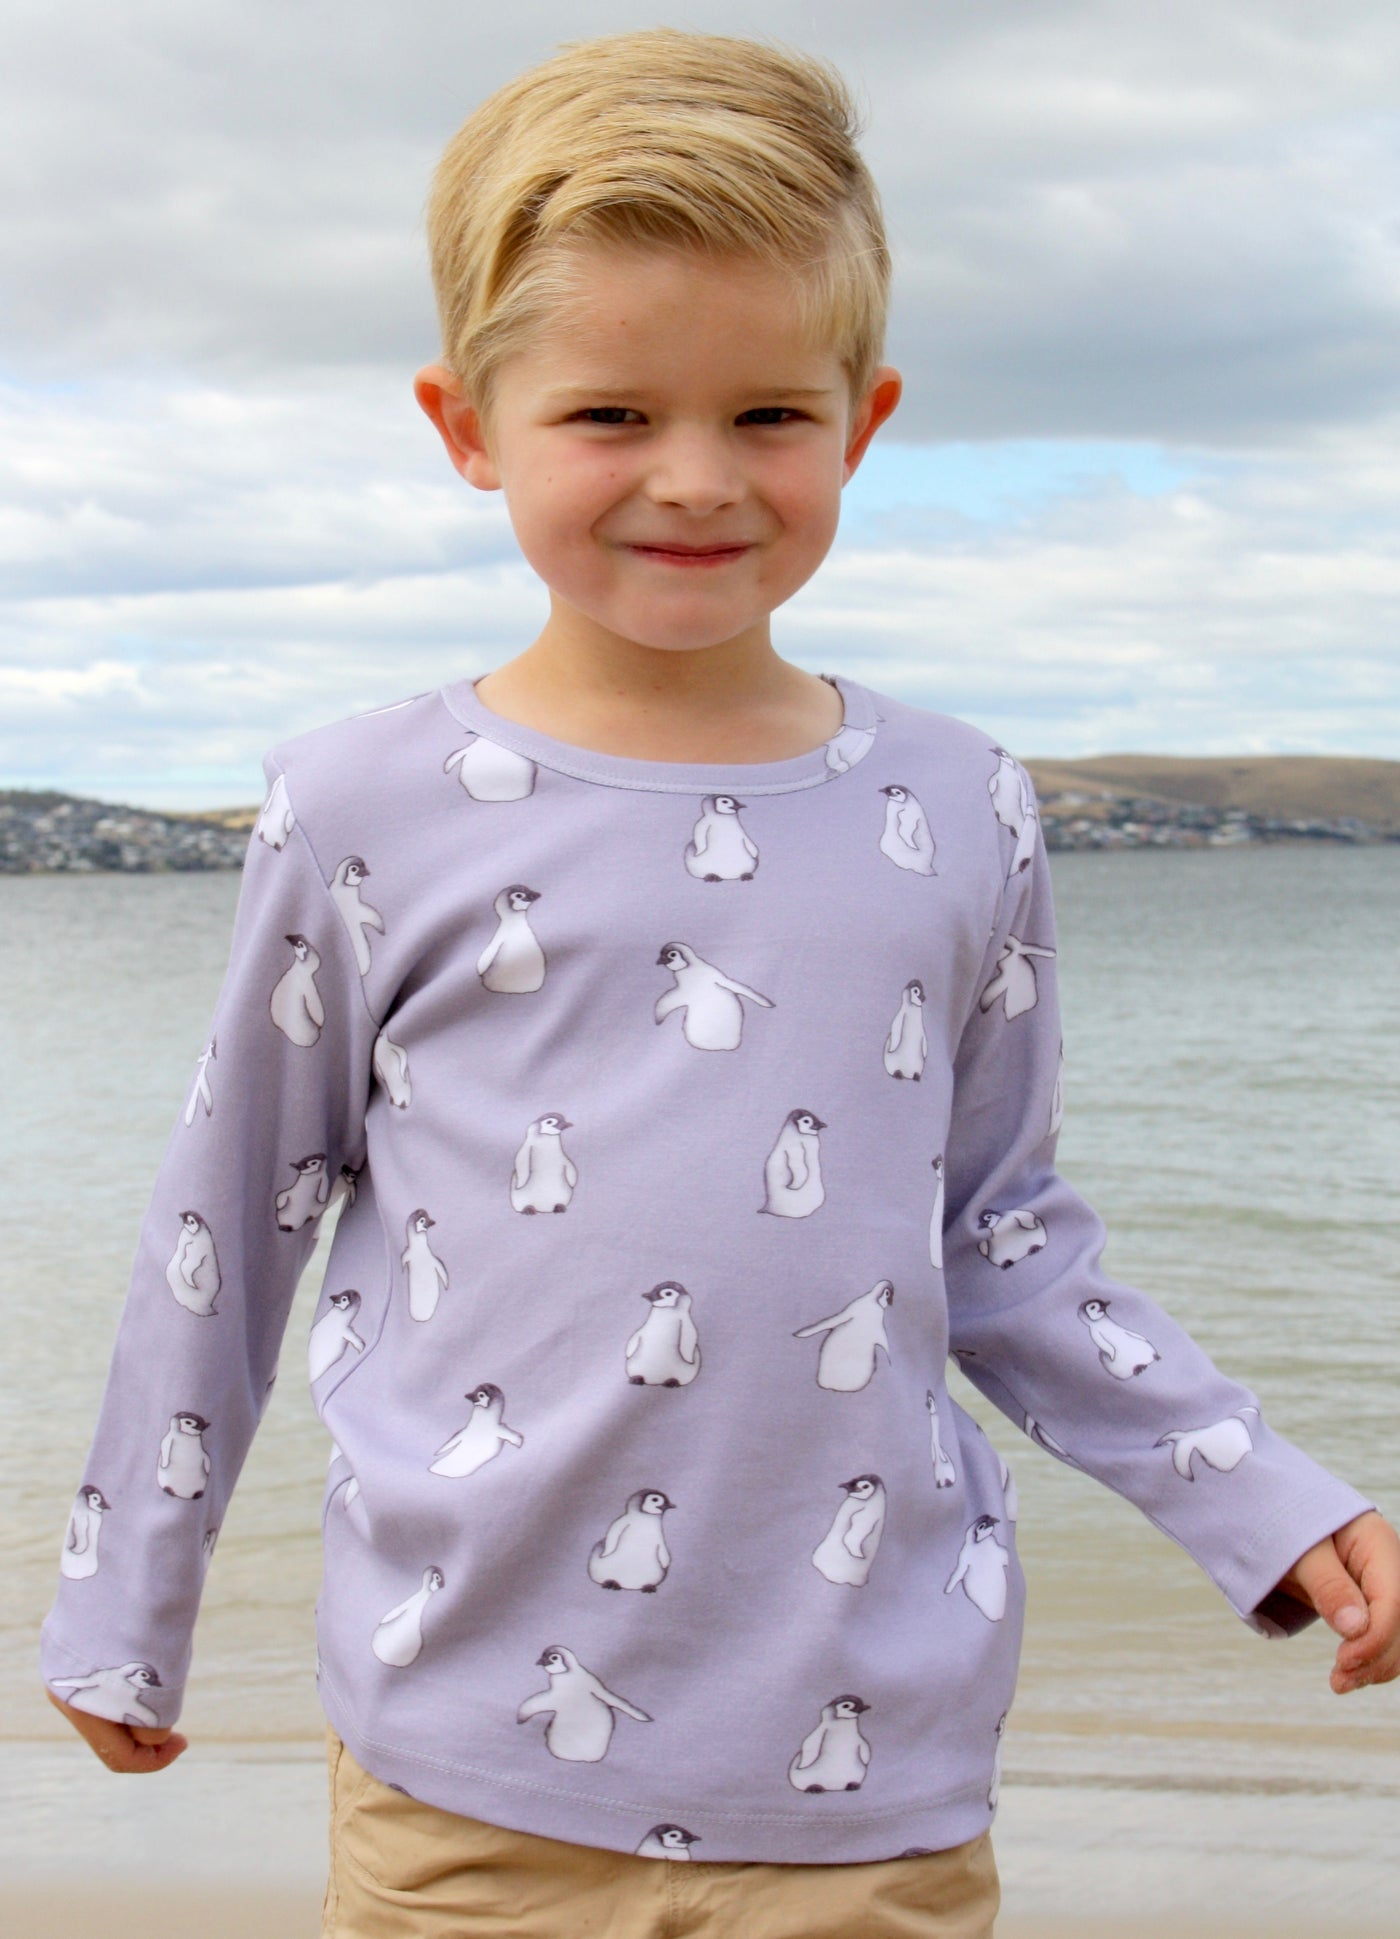 Penguin organic cotton long sleeve tee shirt